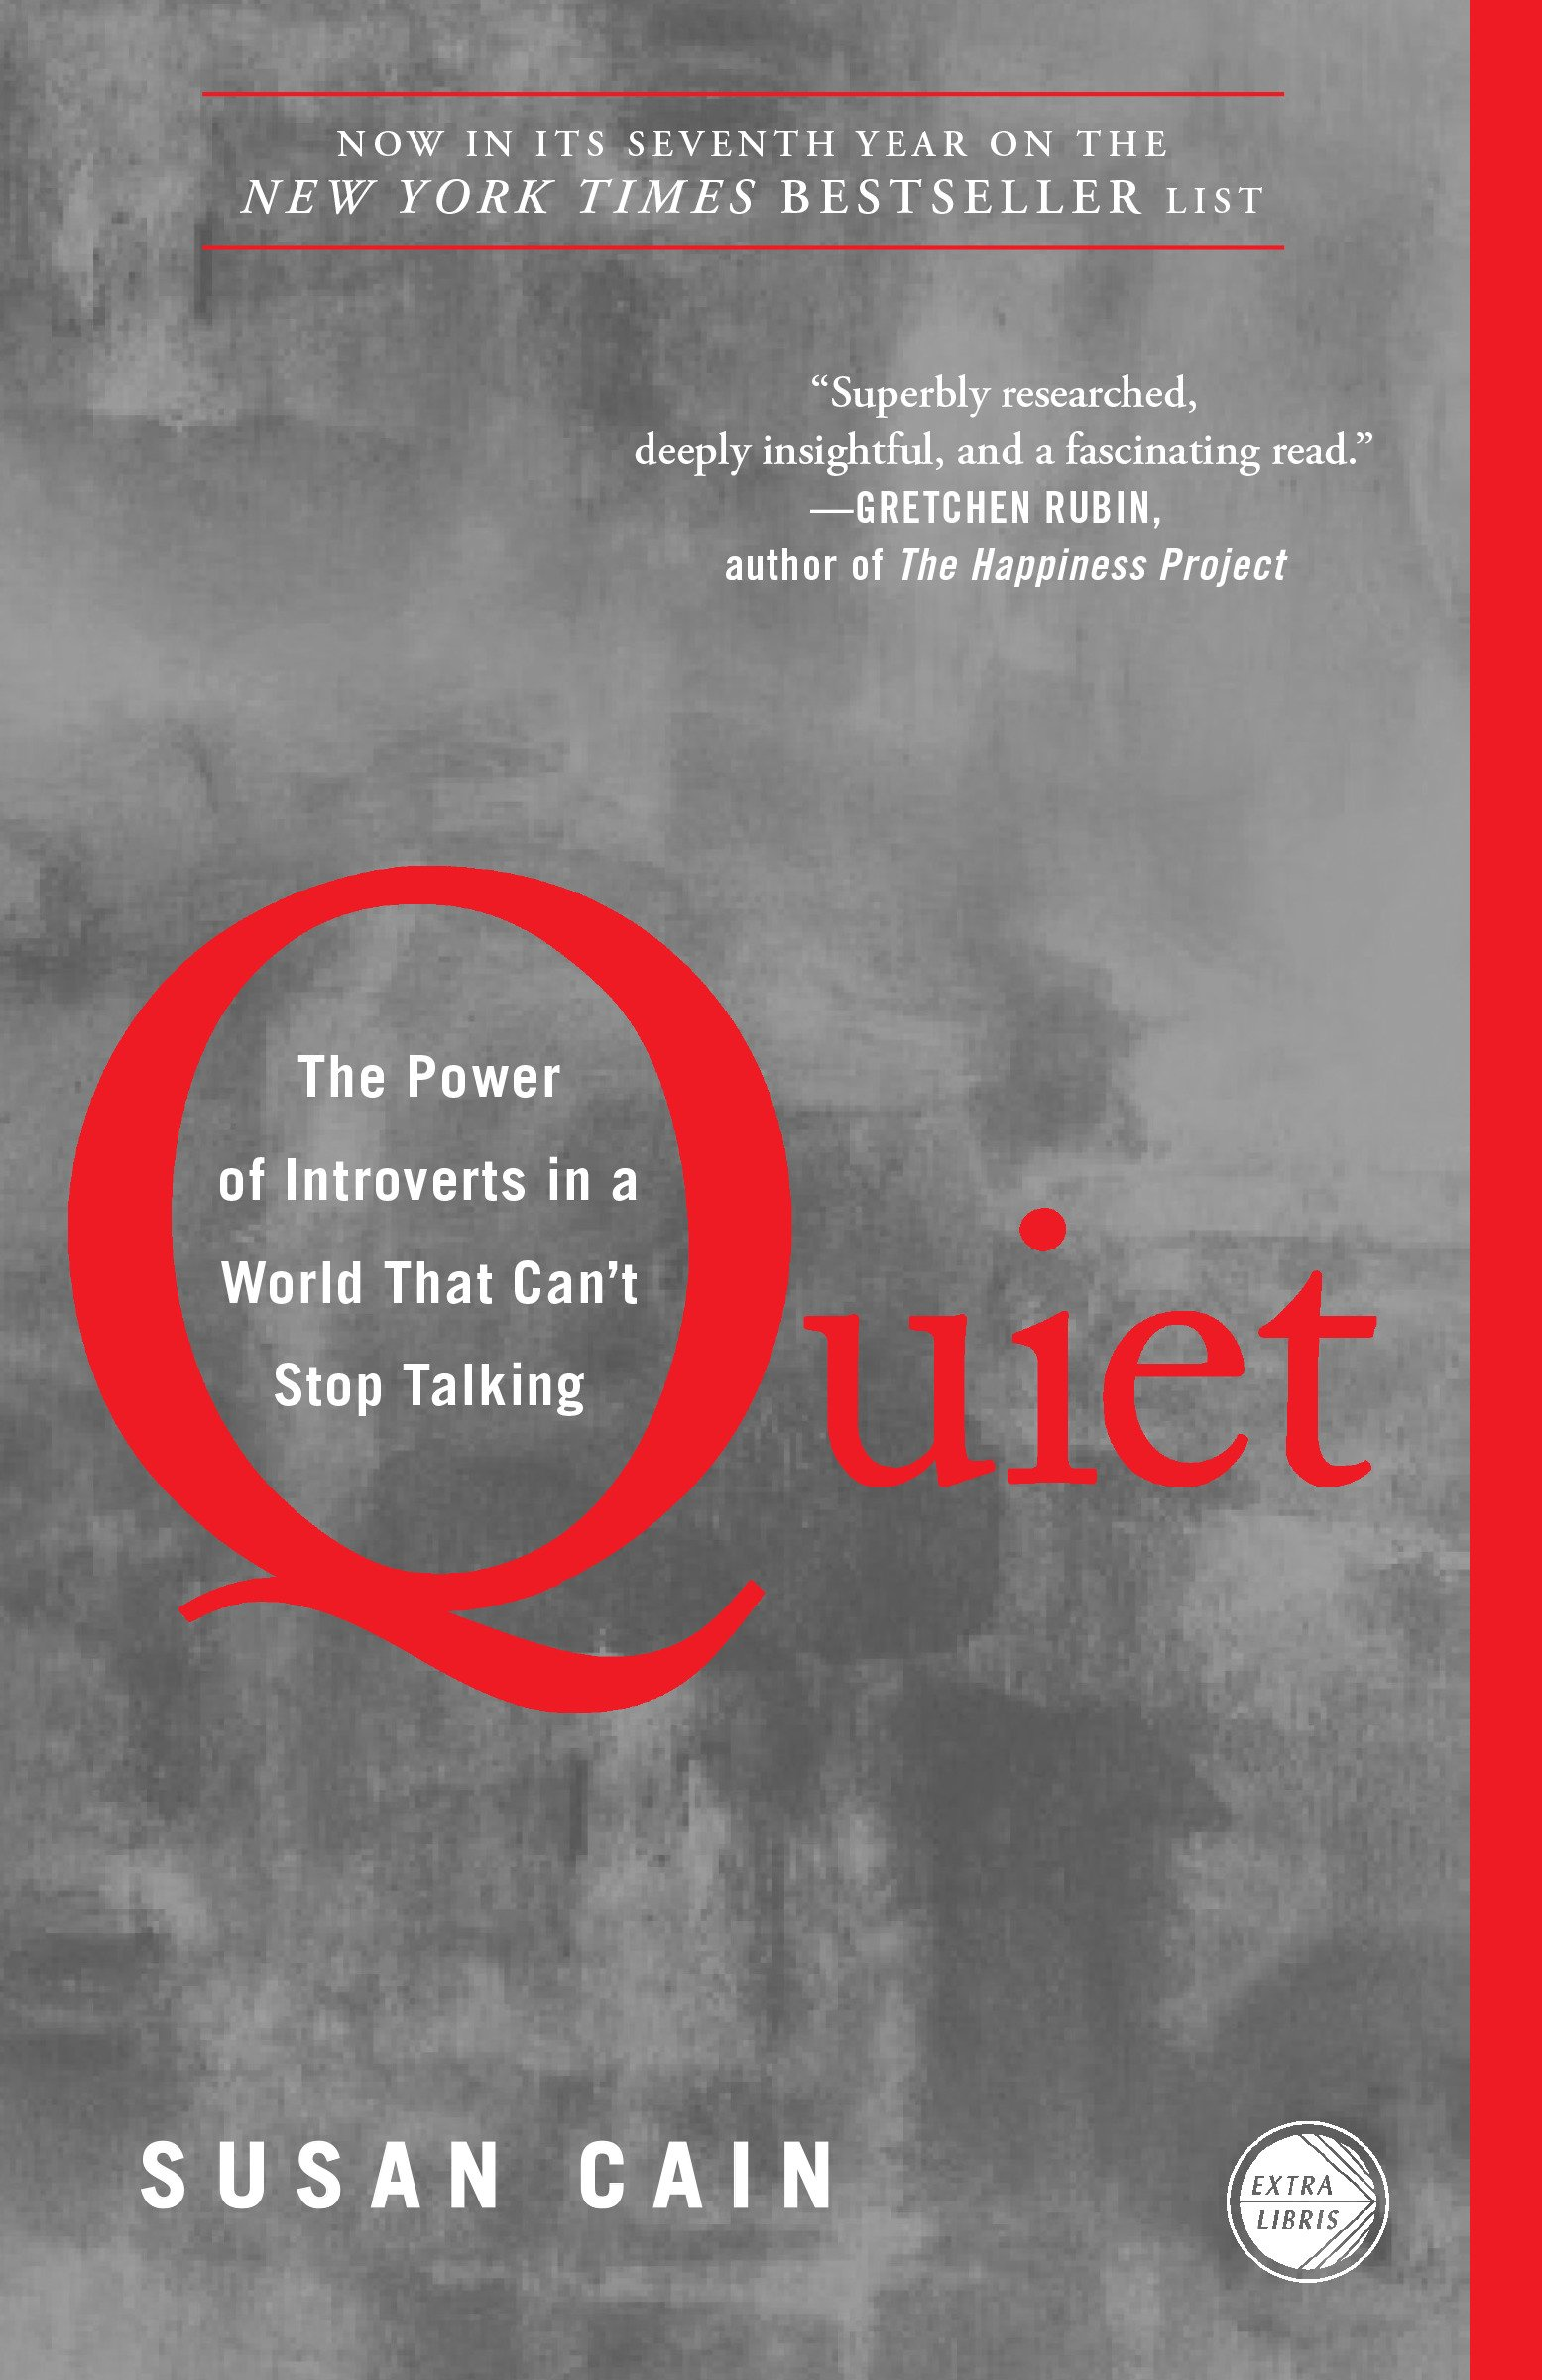 Quiet The Power Of Introverts In A World That Cant Stop Talking Susan Cain 9780307352156 Amazon Books